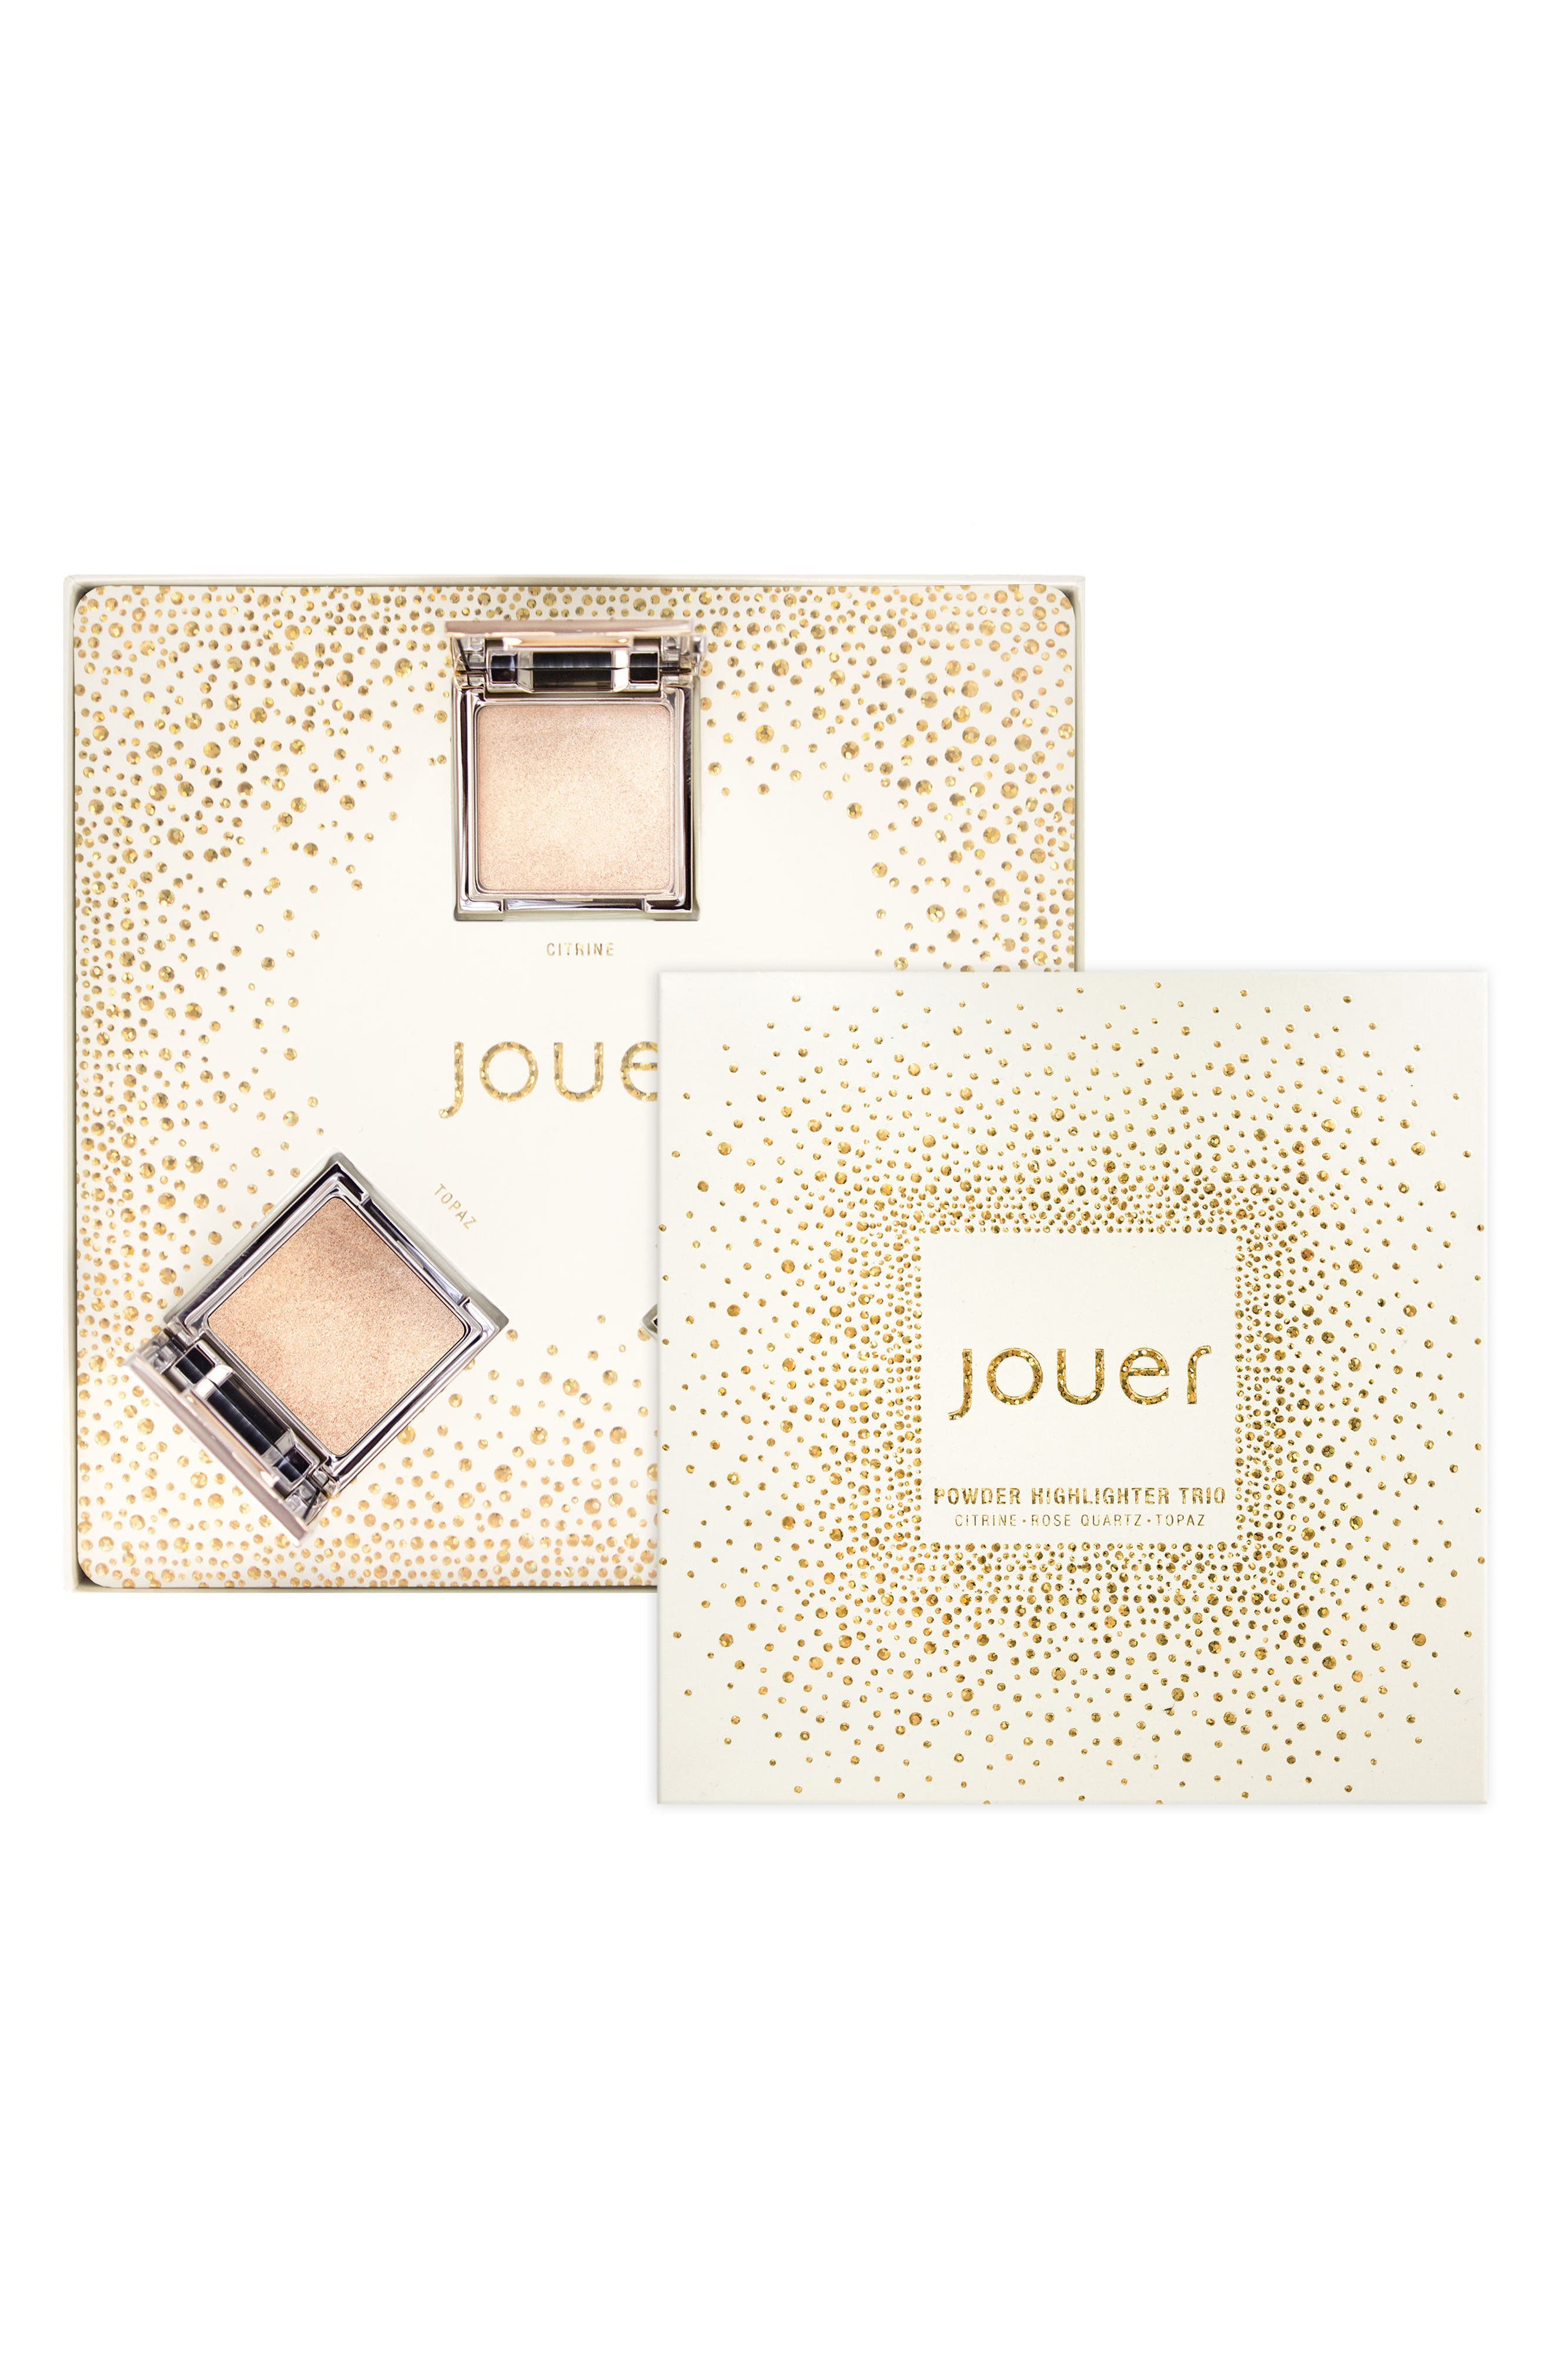 Alternate Image 1 Selected - Jouer Skinny Dip, Peach & Rose Gold Powder Highlighter Trio ($60 Value)